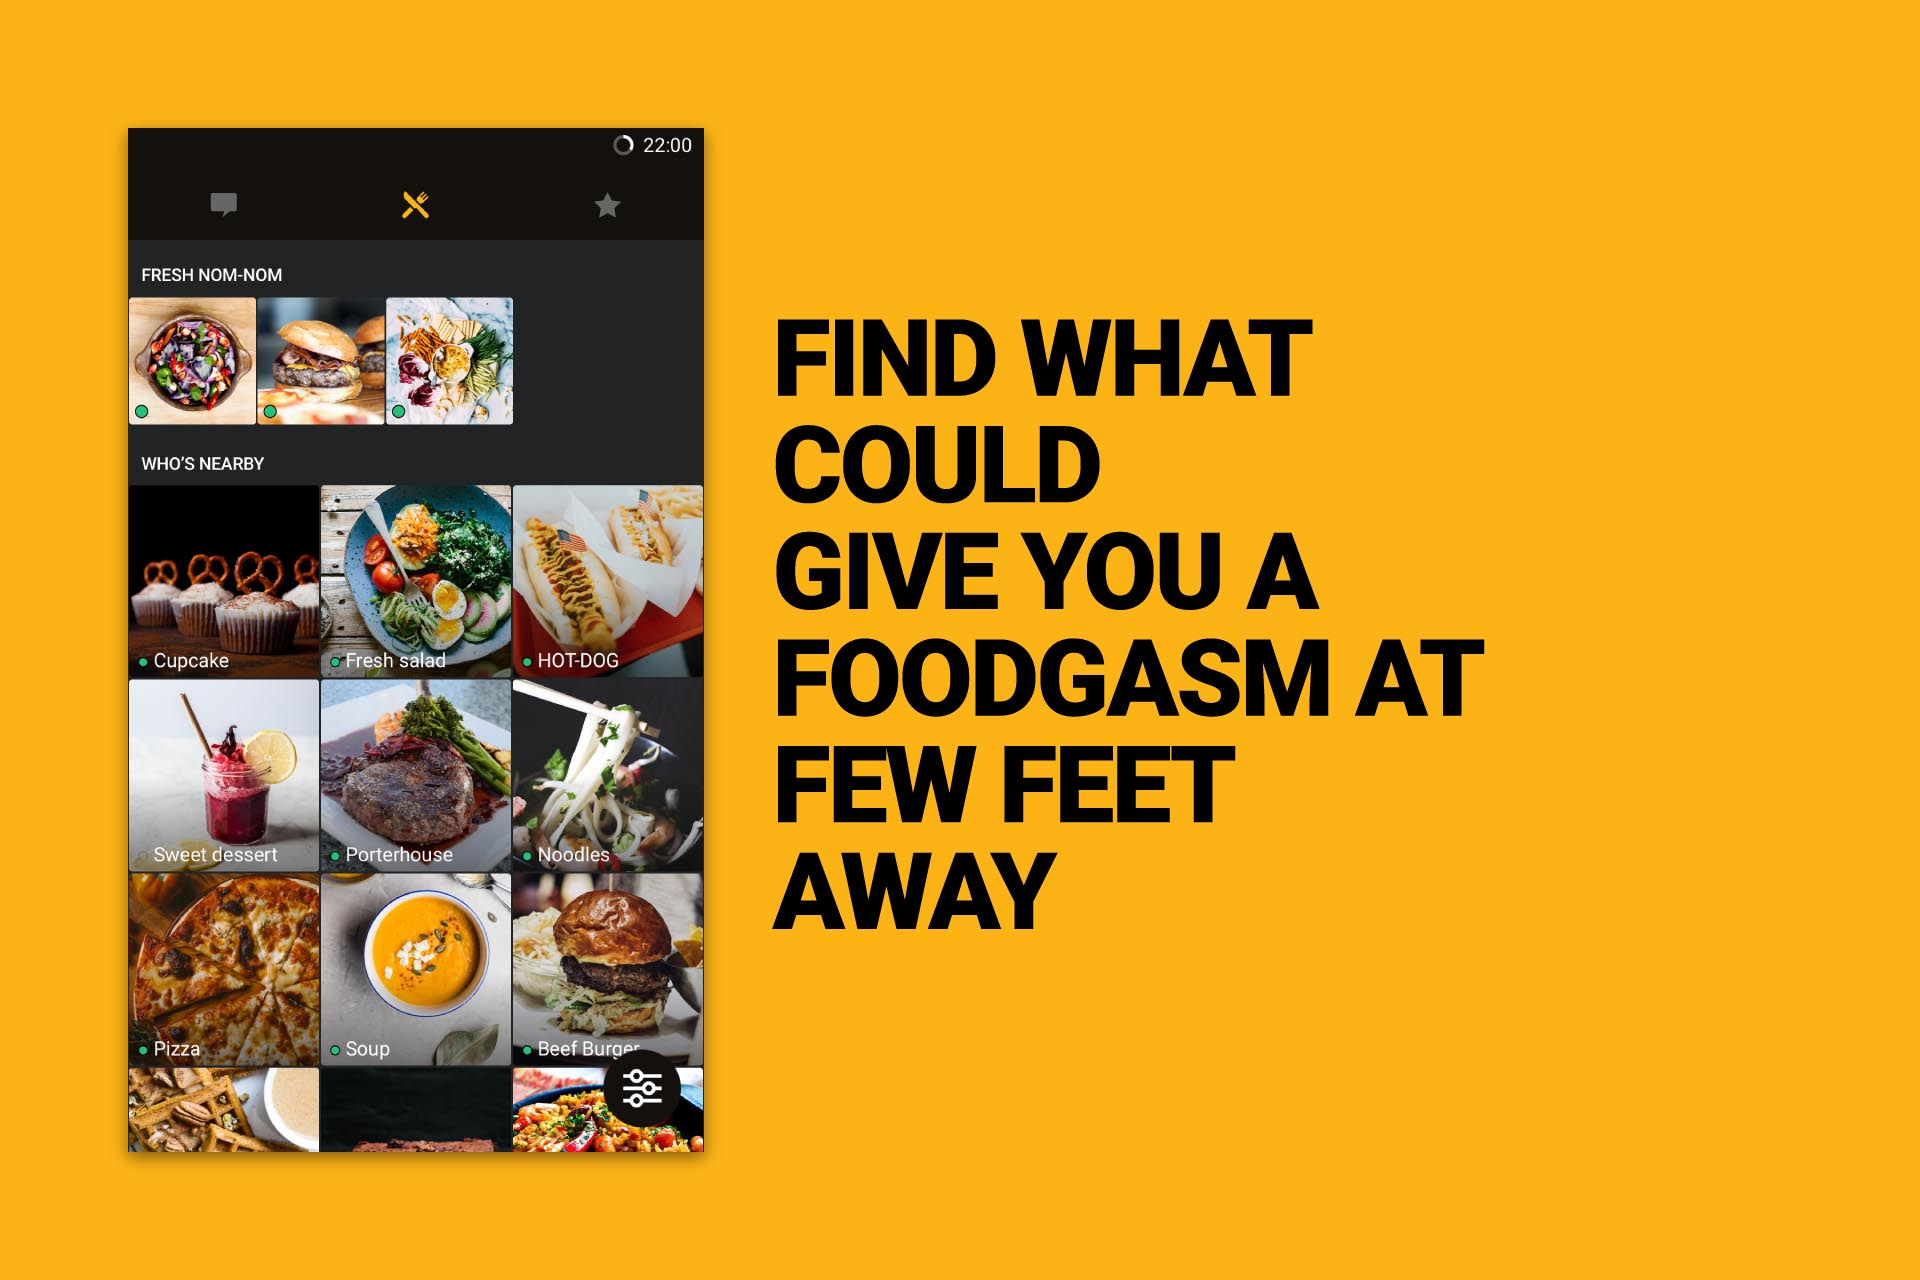 Grindr feel showing profile of delicious food instead of men